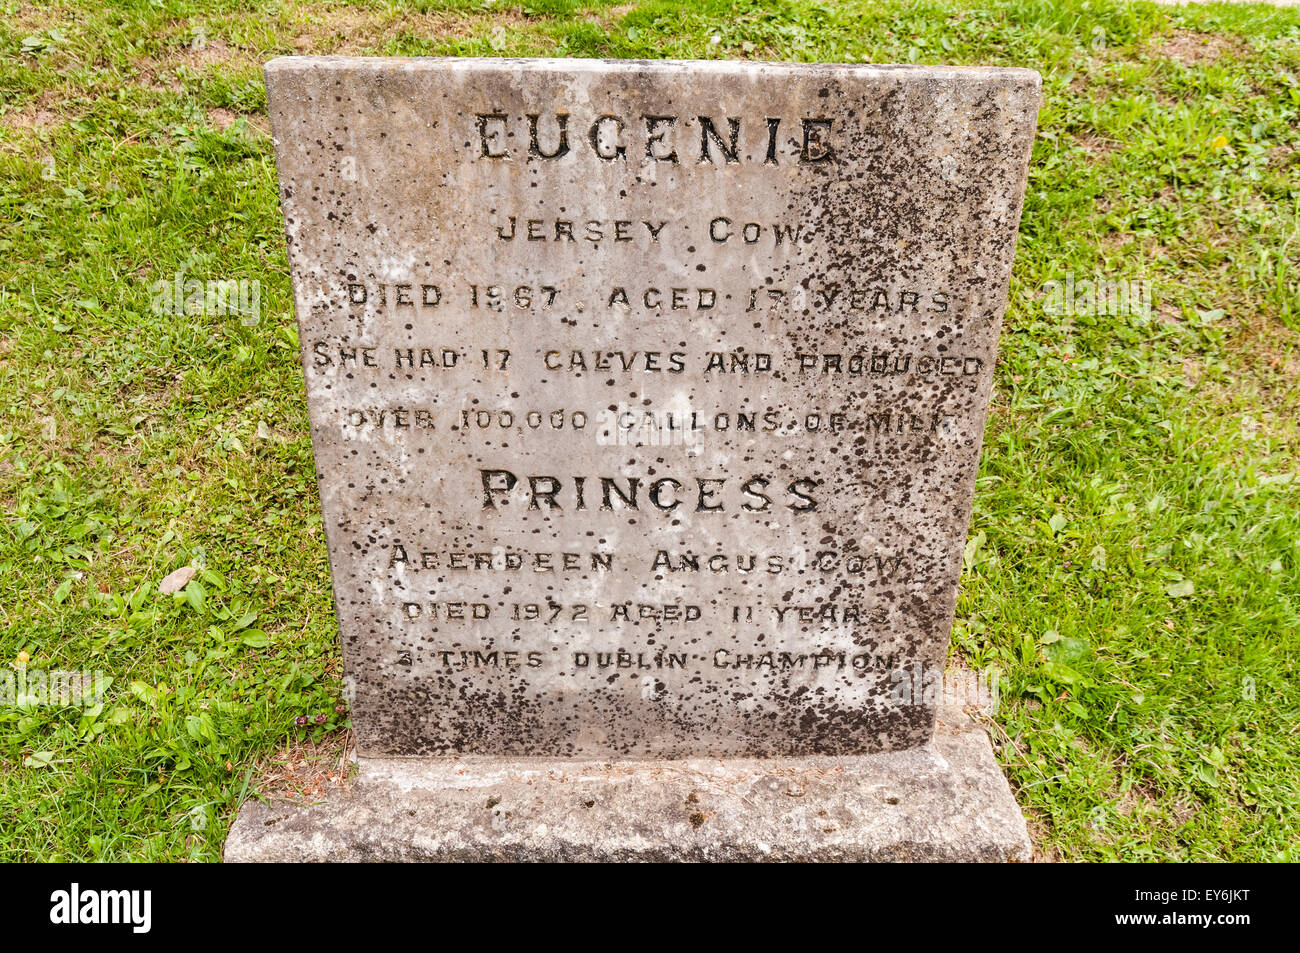 Gravestone for Jersey cow 'Eugenie' and Aberdeen Angus 'Princess' in a pet cemetery - Stock Image